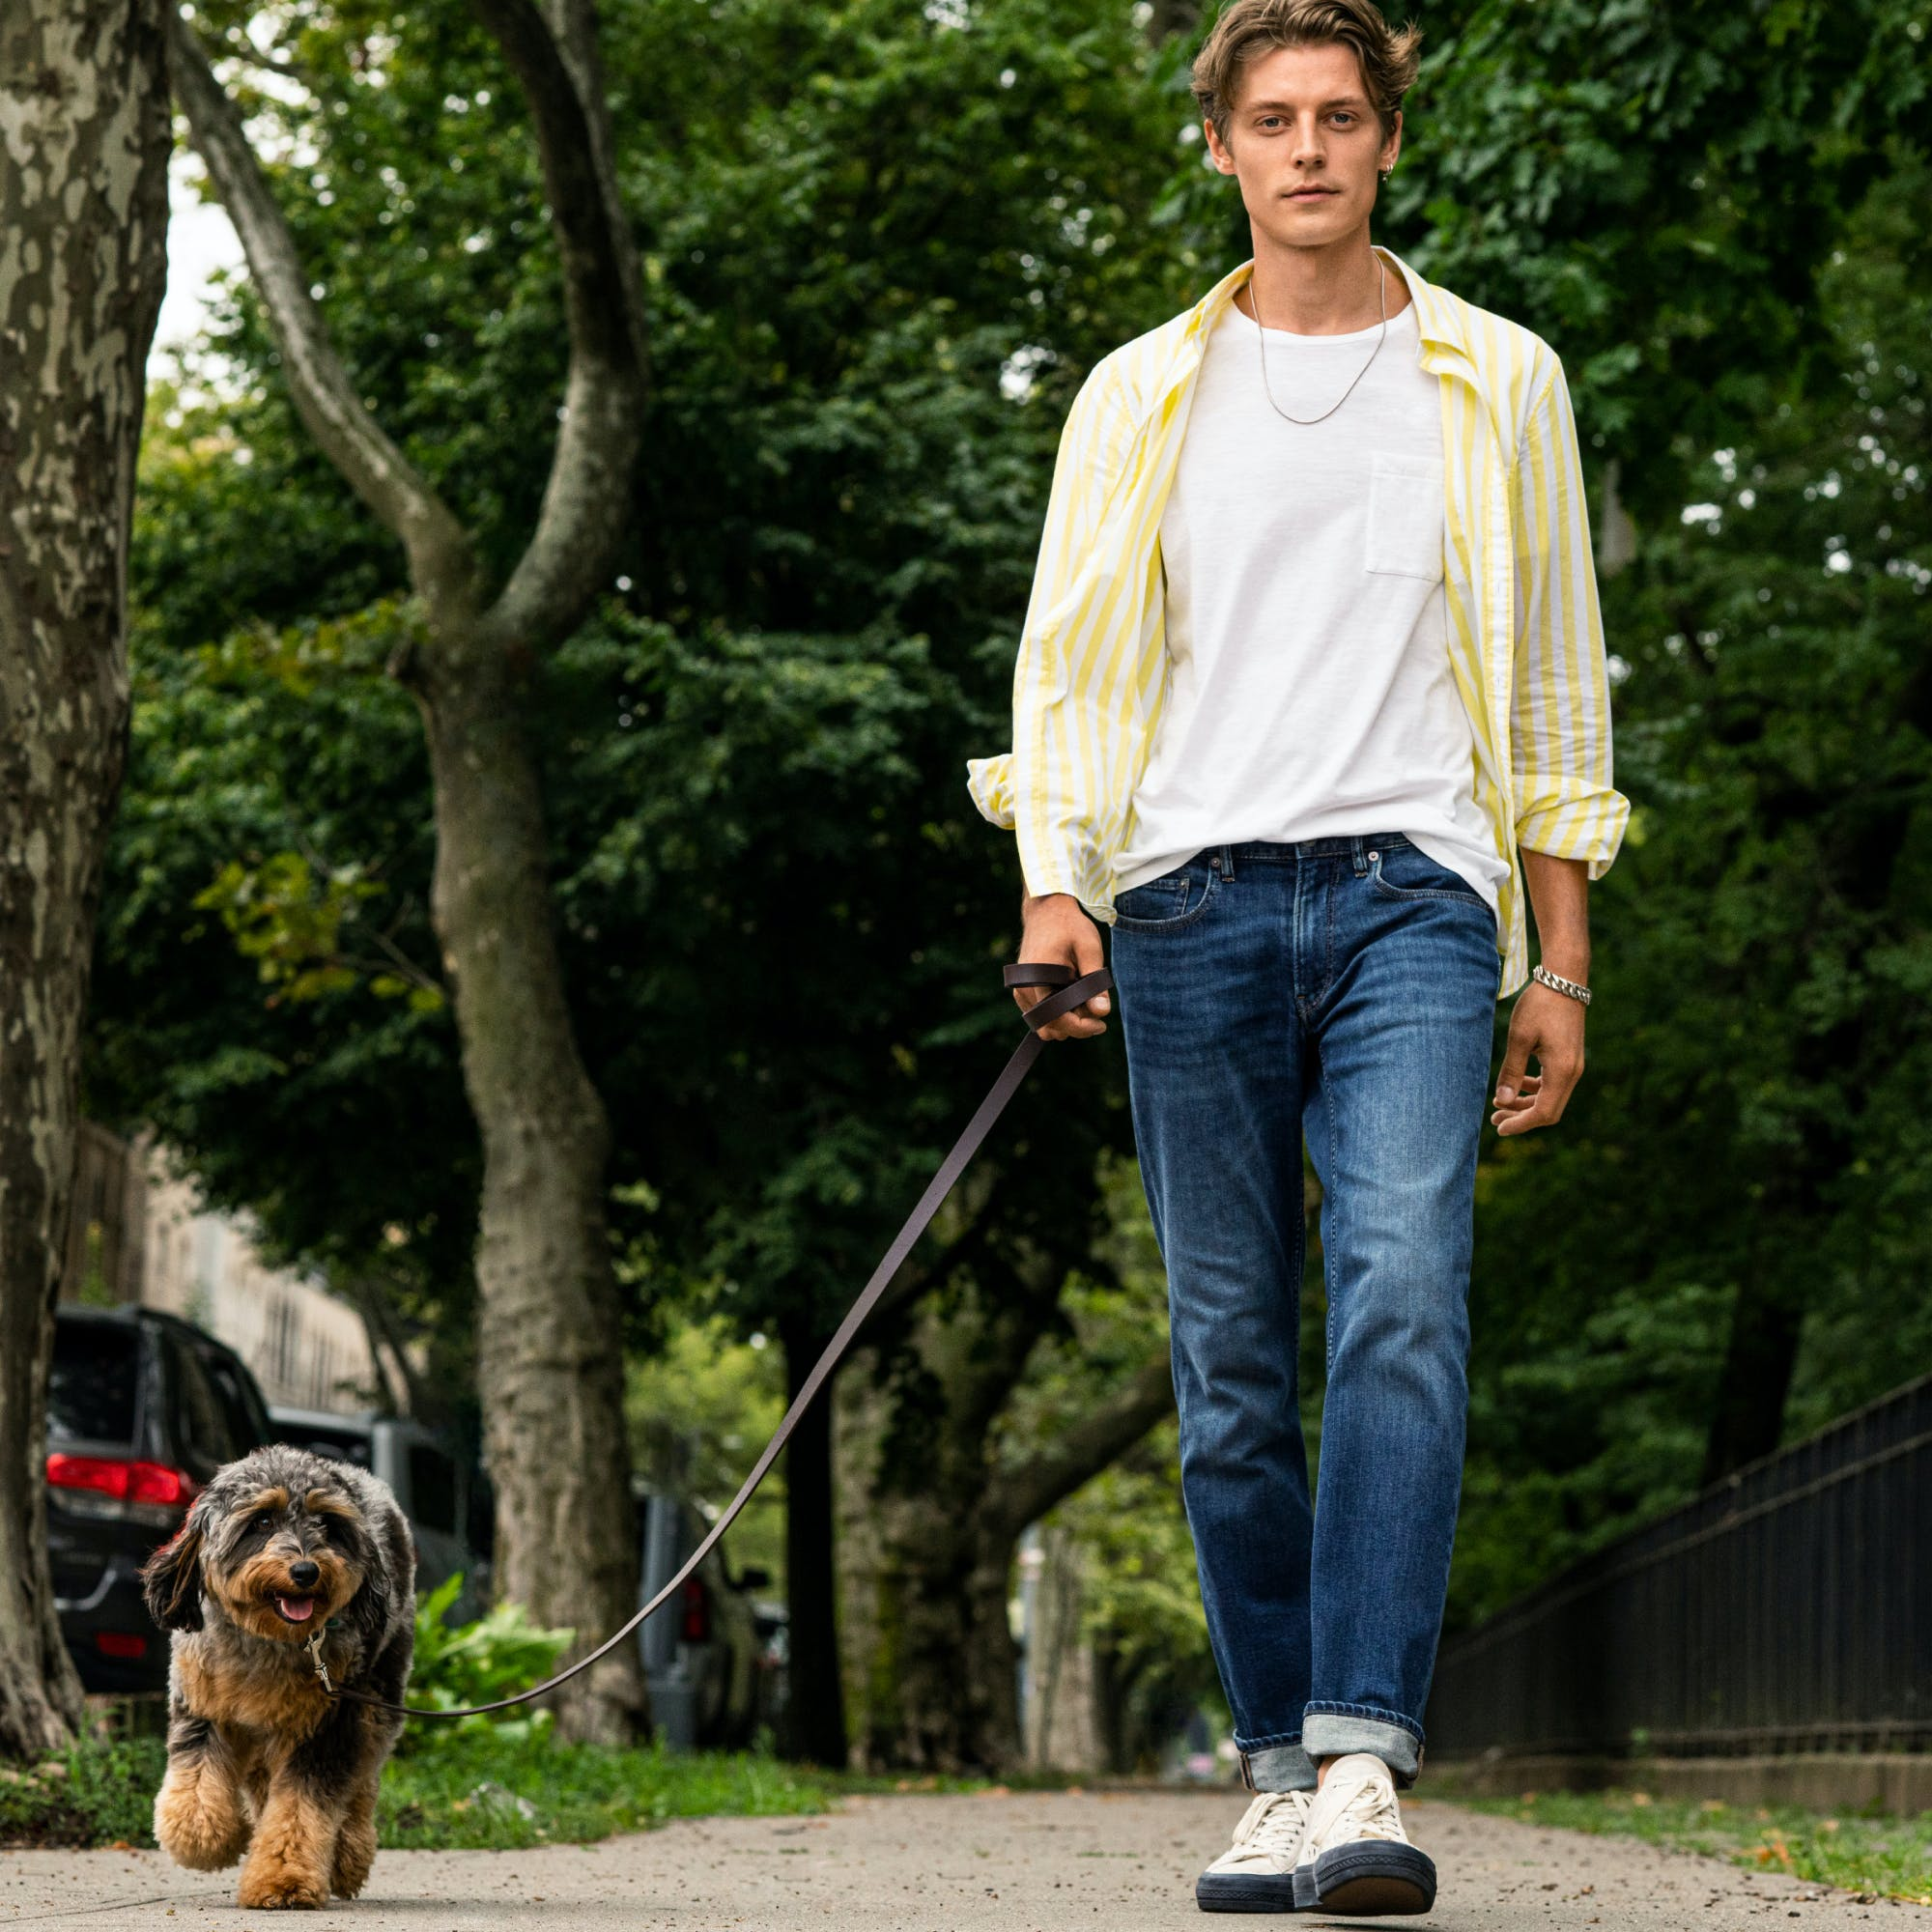 Man wearing lightweight Jeans walking his dog